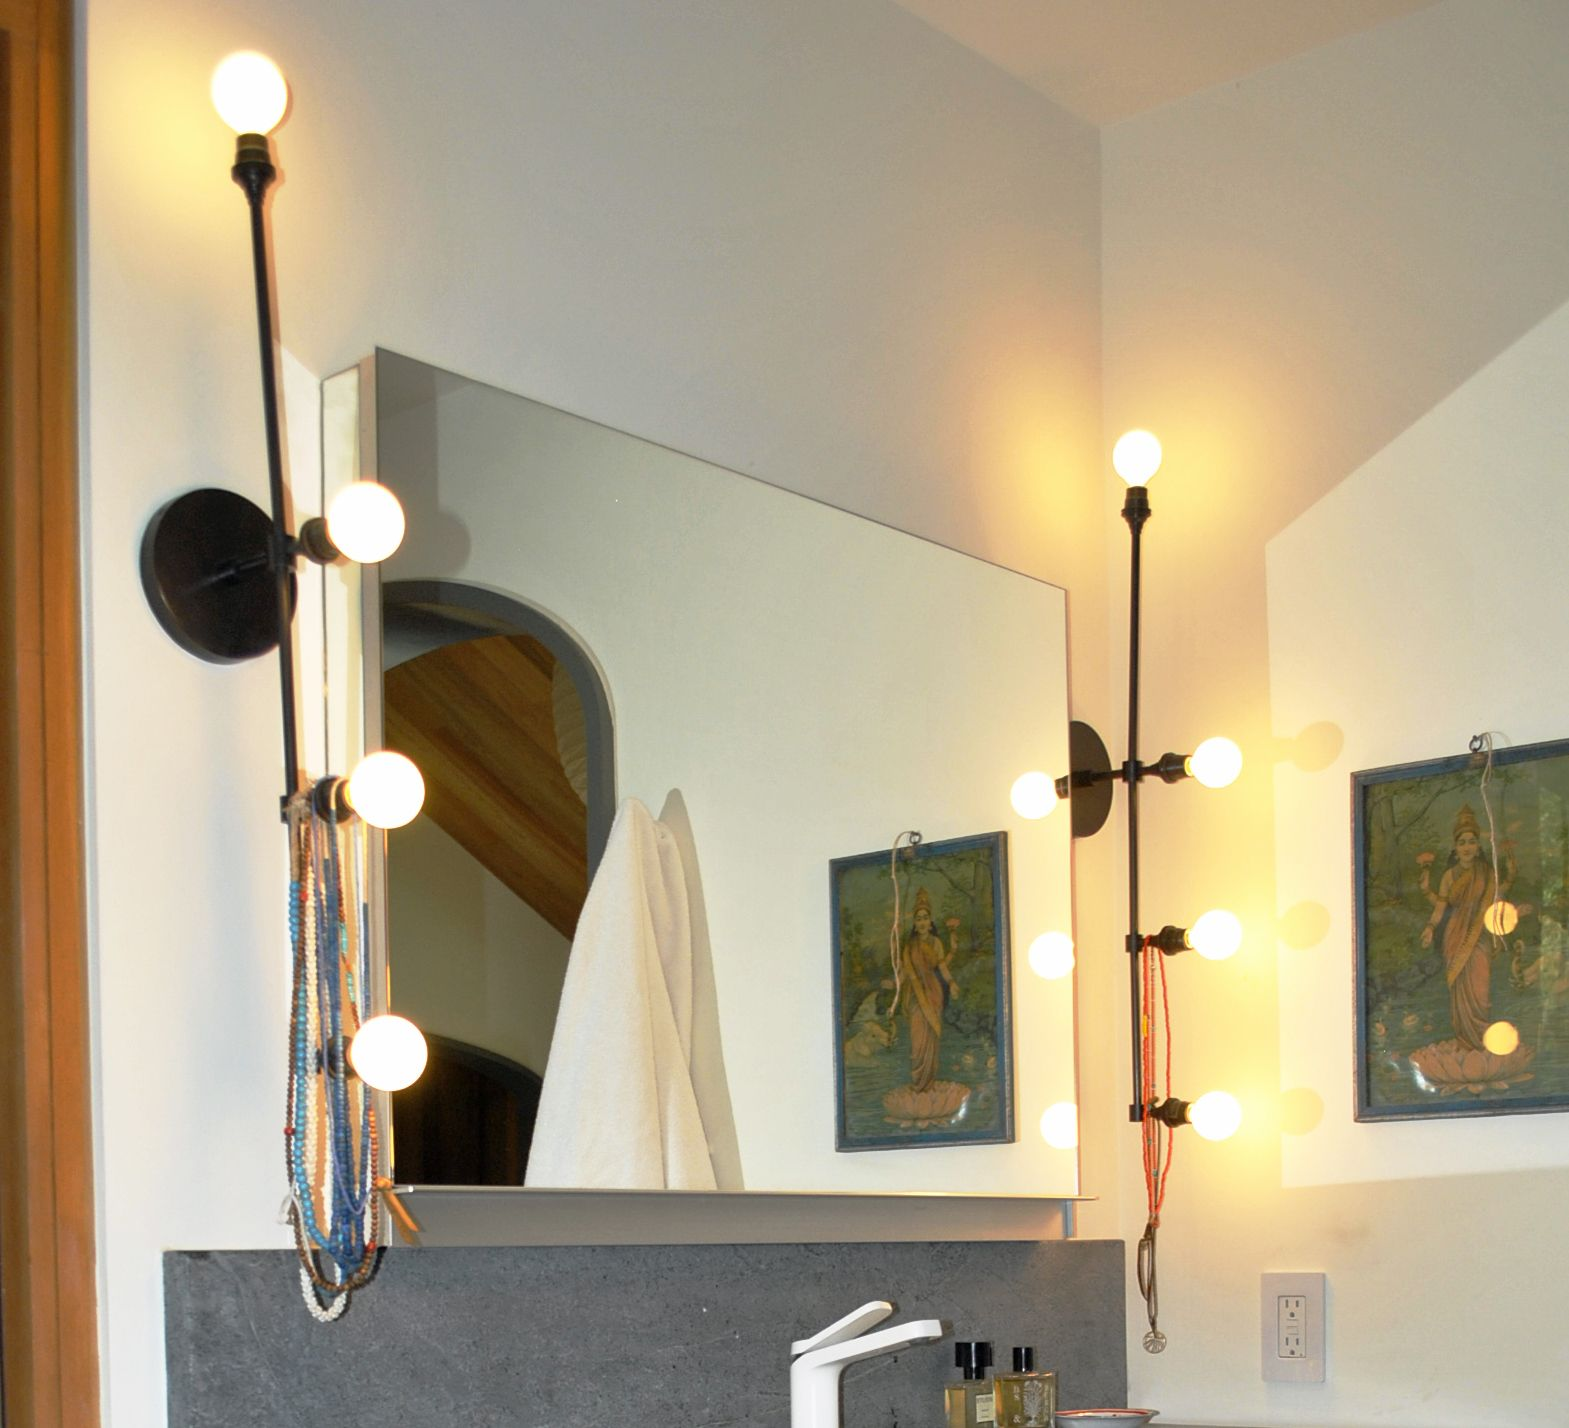 lights wid c wall and lighting jpeg bathroom lit light fans hq sconce bthlghtng ceiling vanity